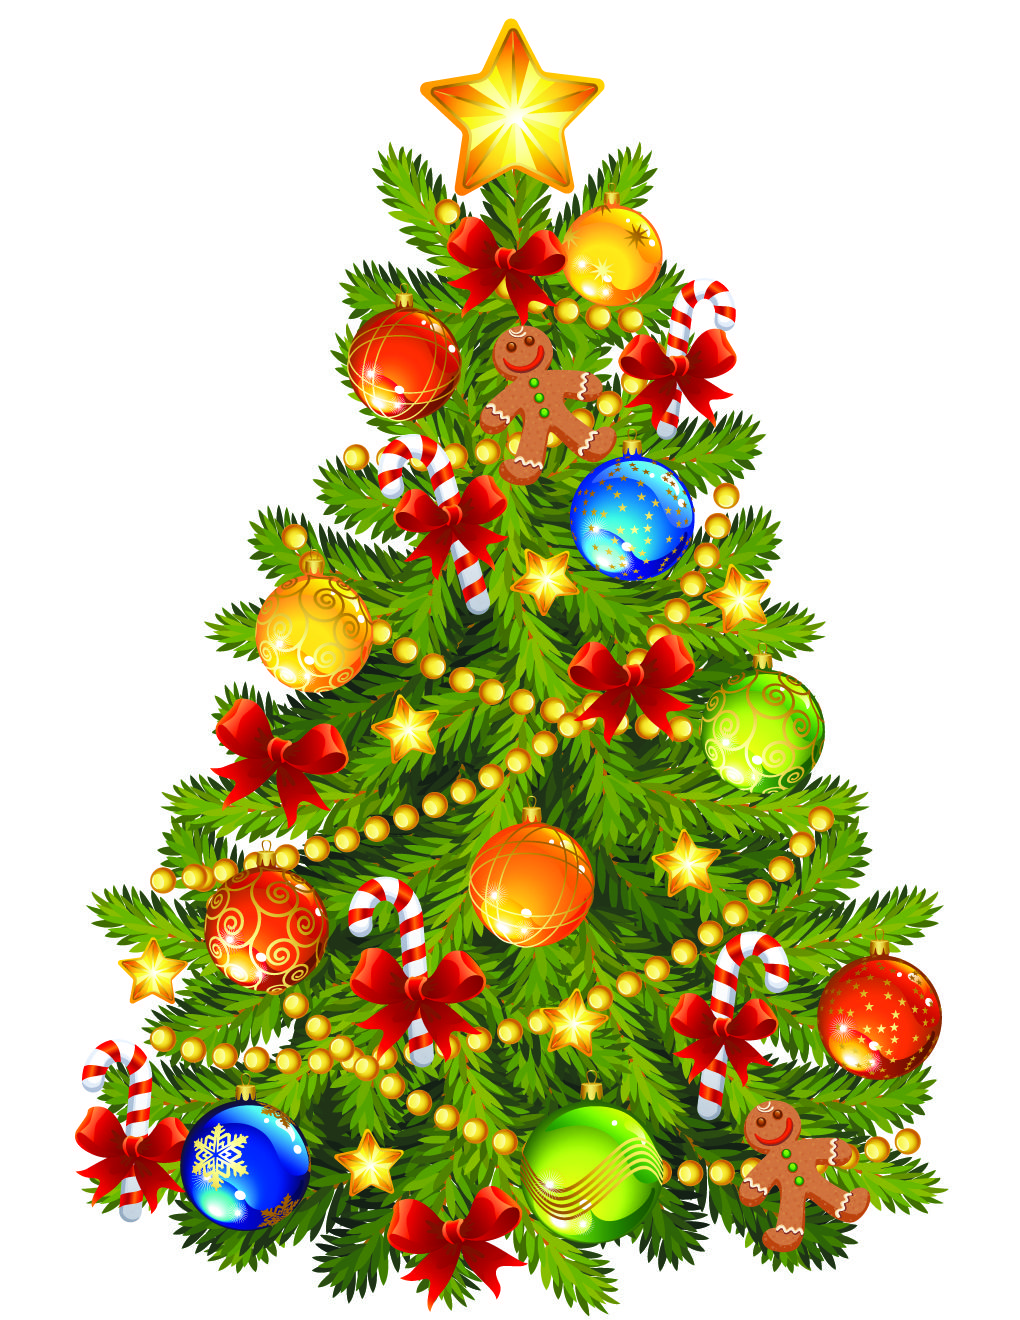 Large Transparent Christmas Tree with Gingerbread Ornament Clipart